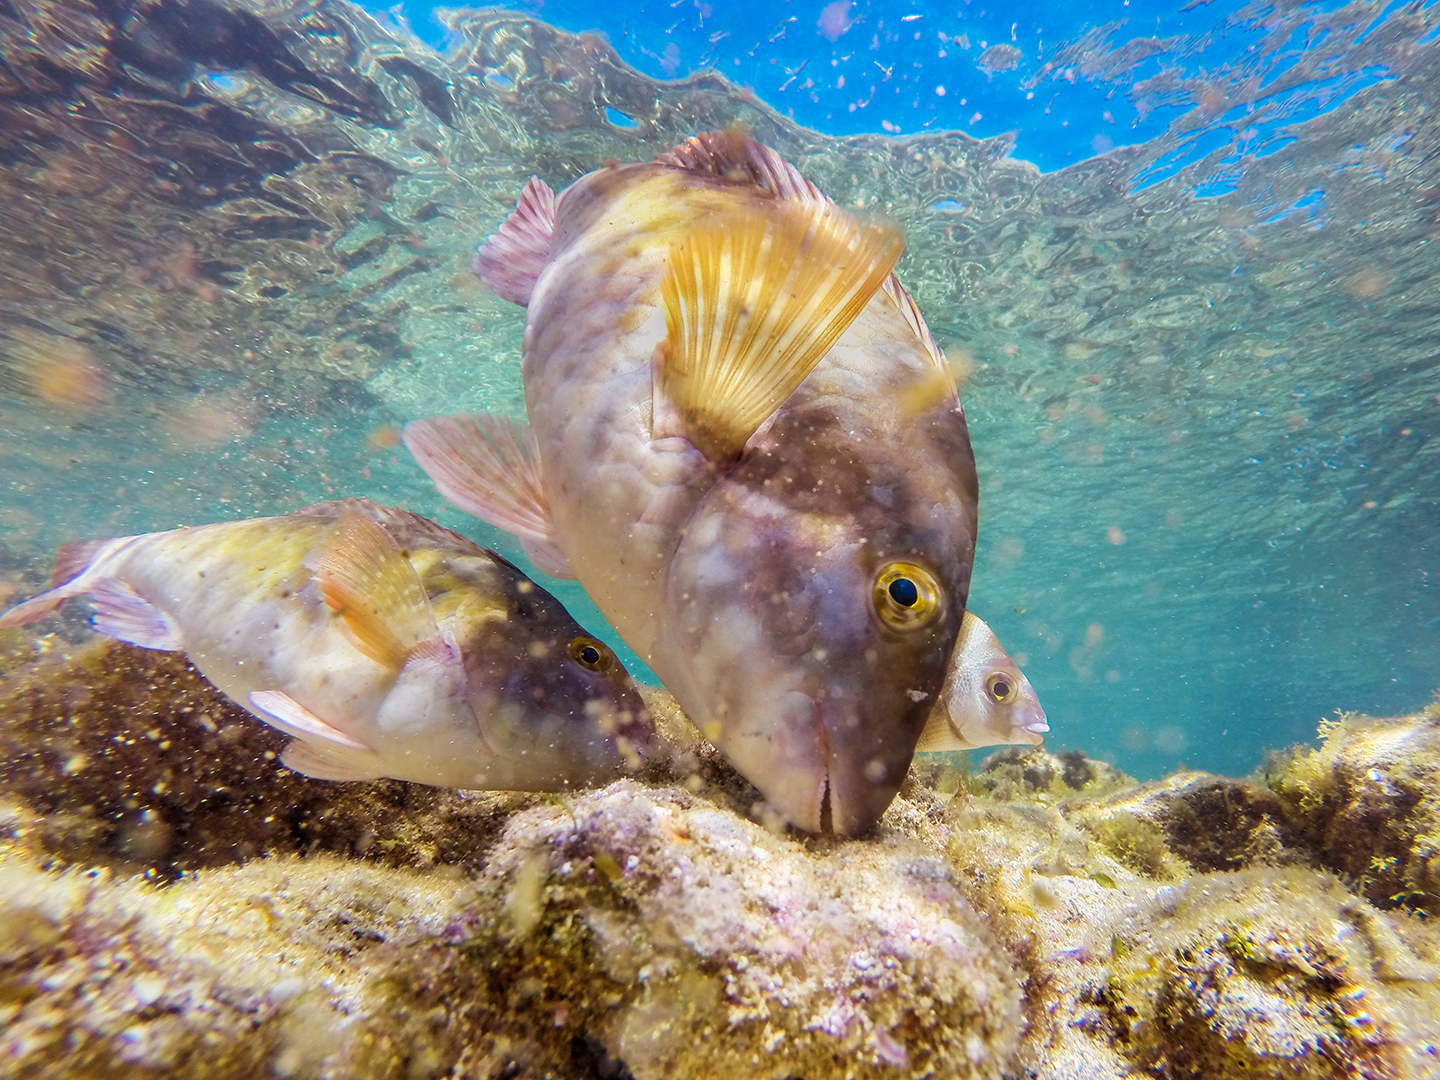 Parrotfish in the Canary Islands